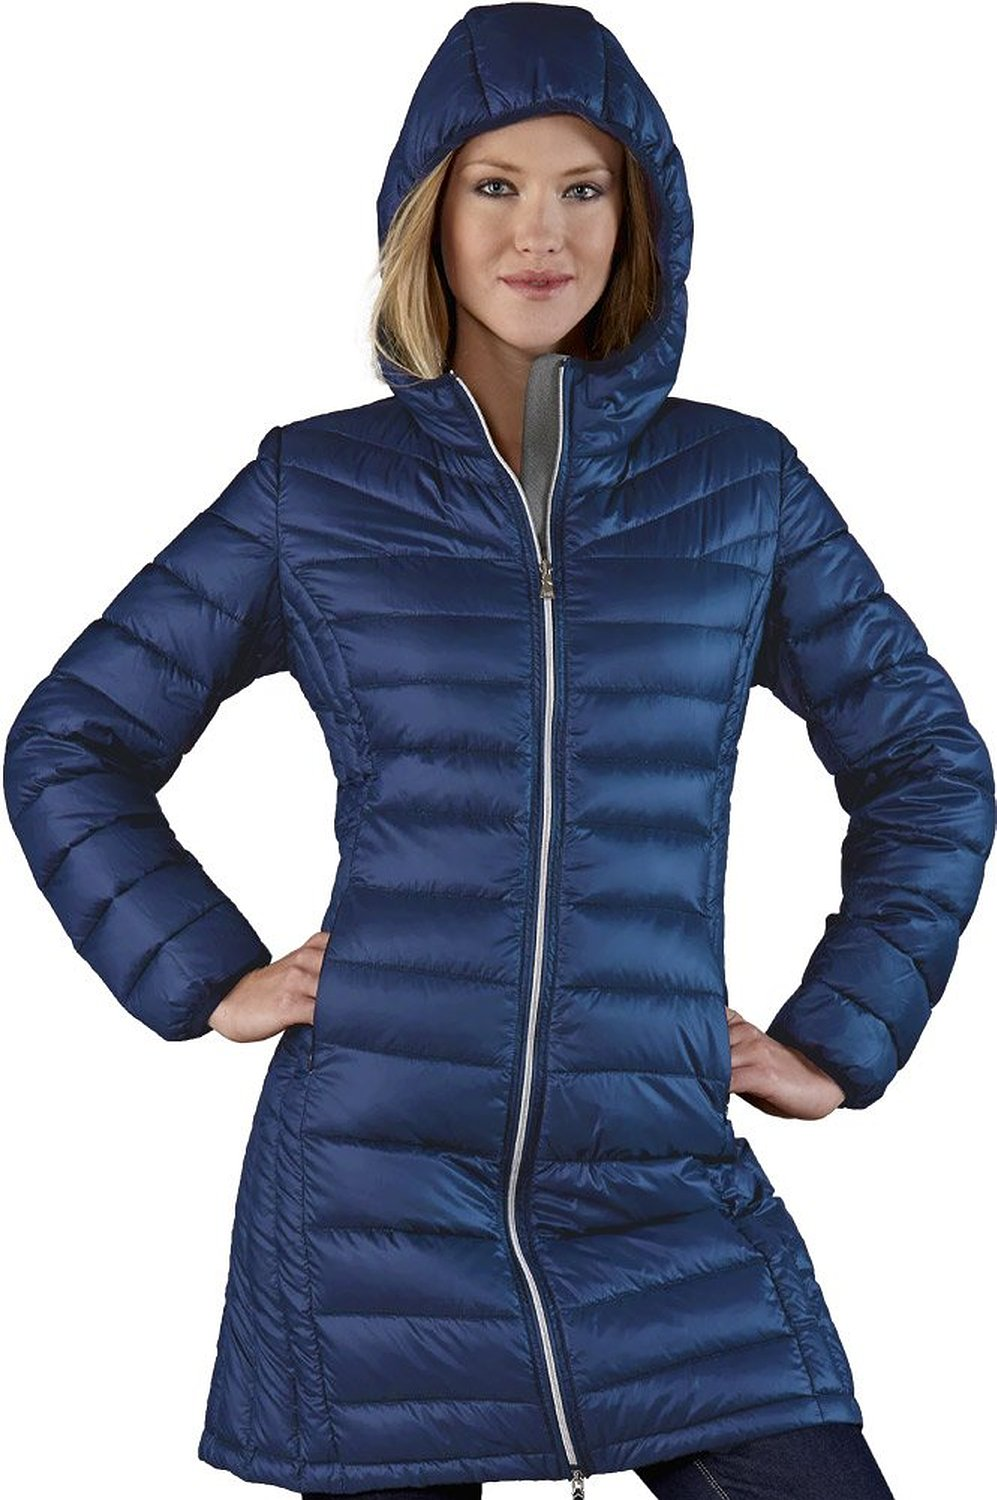 Sport Long Down Jacket at Amazon Women's Clothing store: